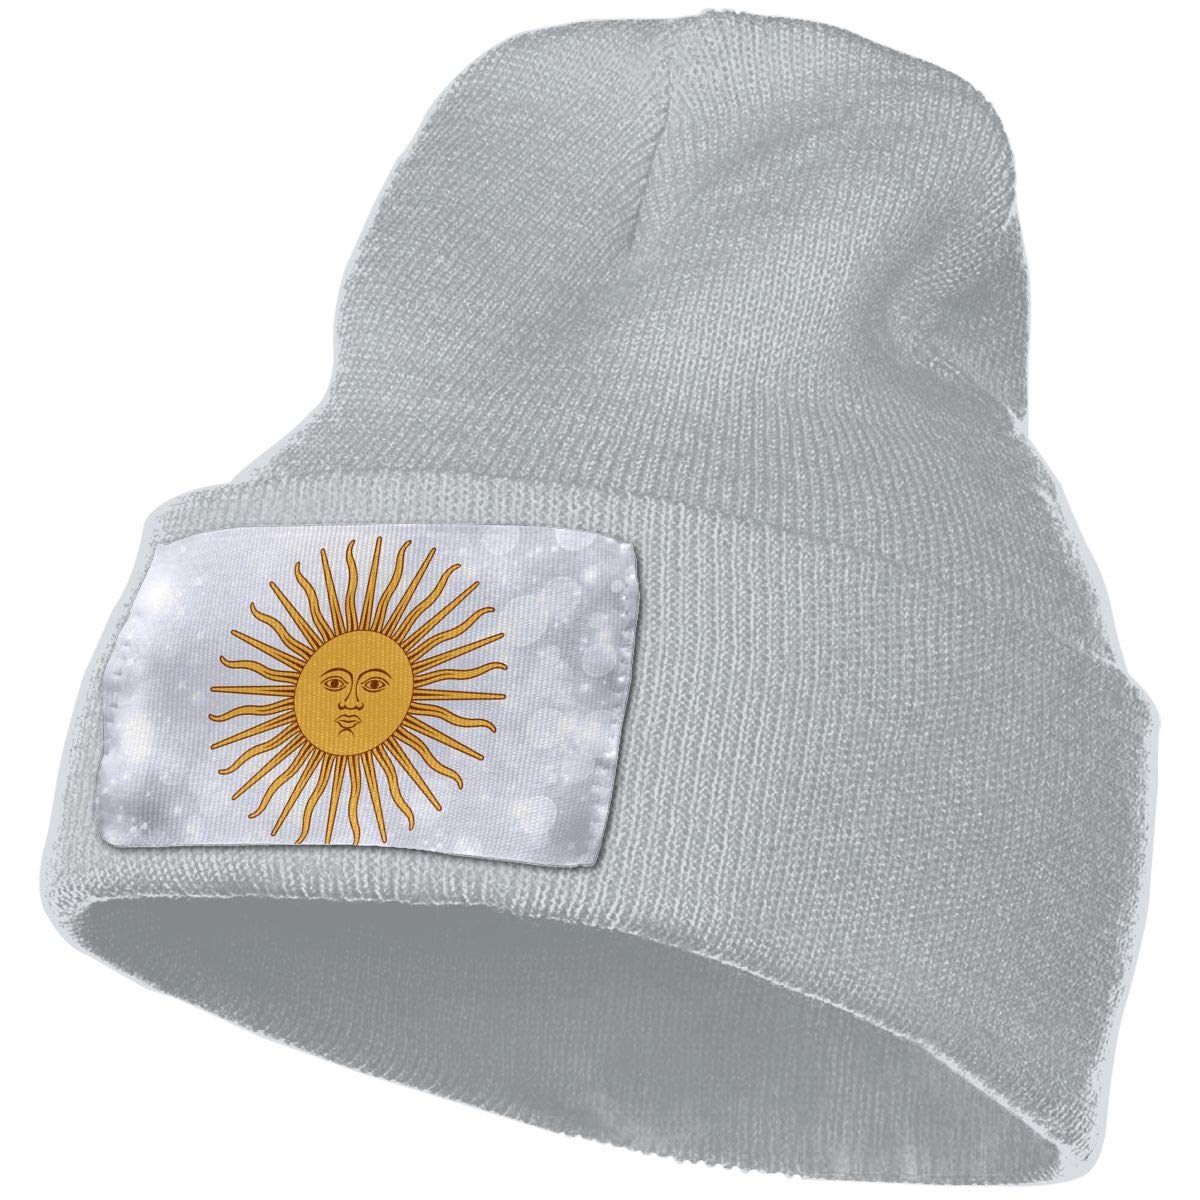 Flag of Argentina Sun Hat for Men and Women Winter Warm Hats Knit Slouchy Thick Skull Cap